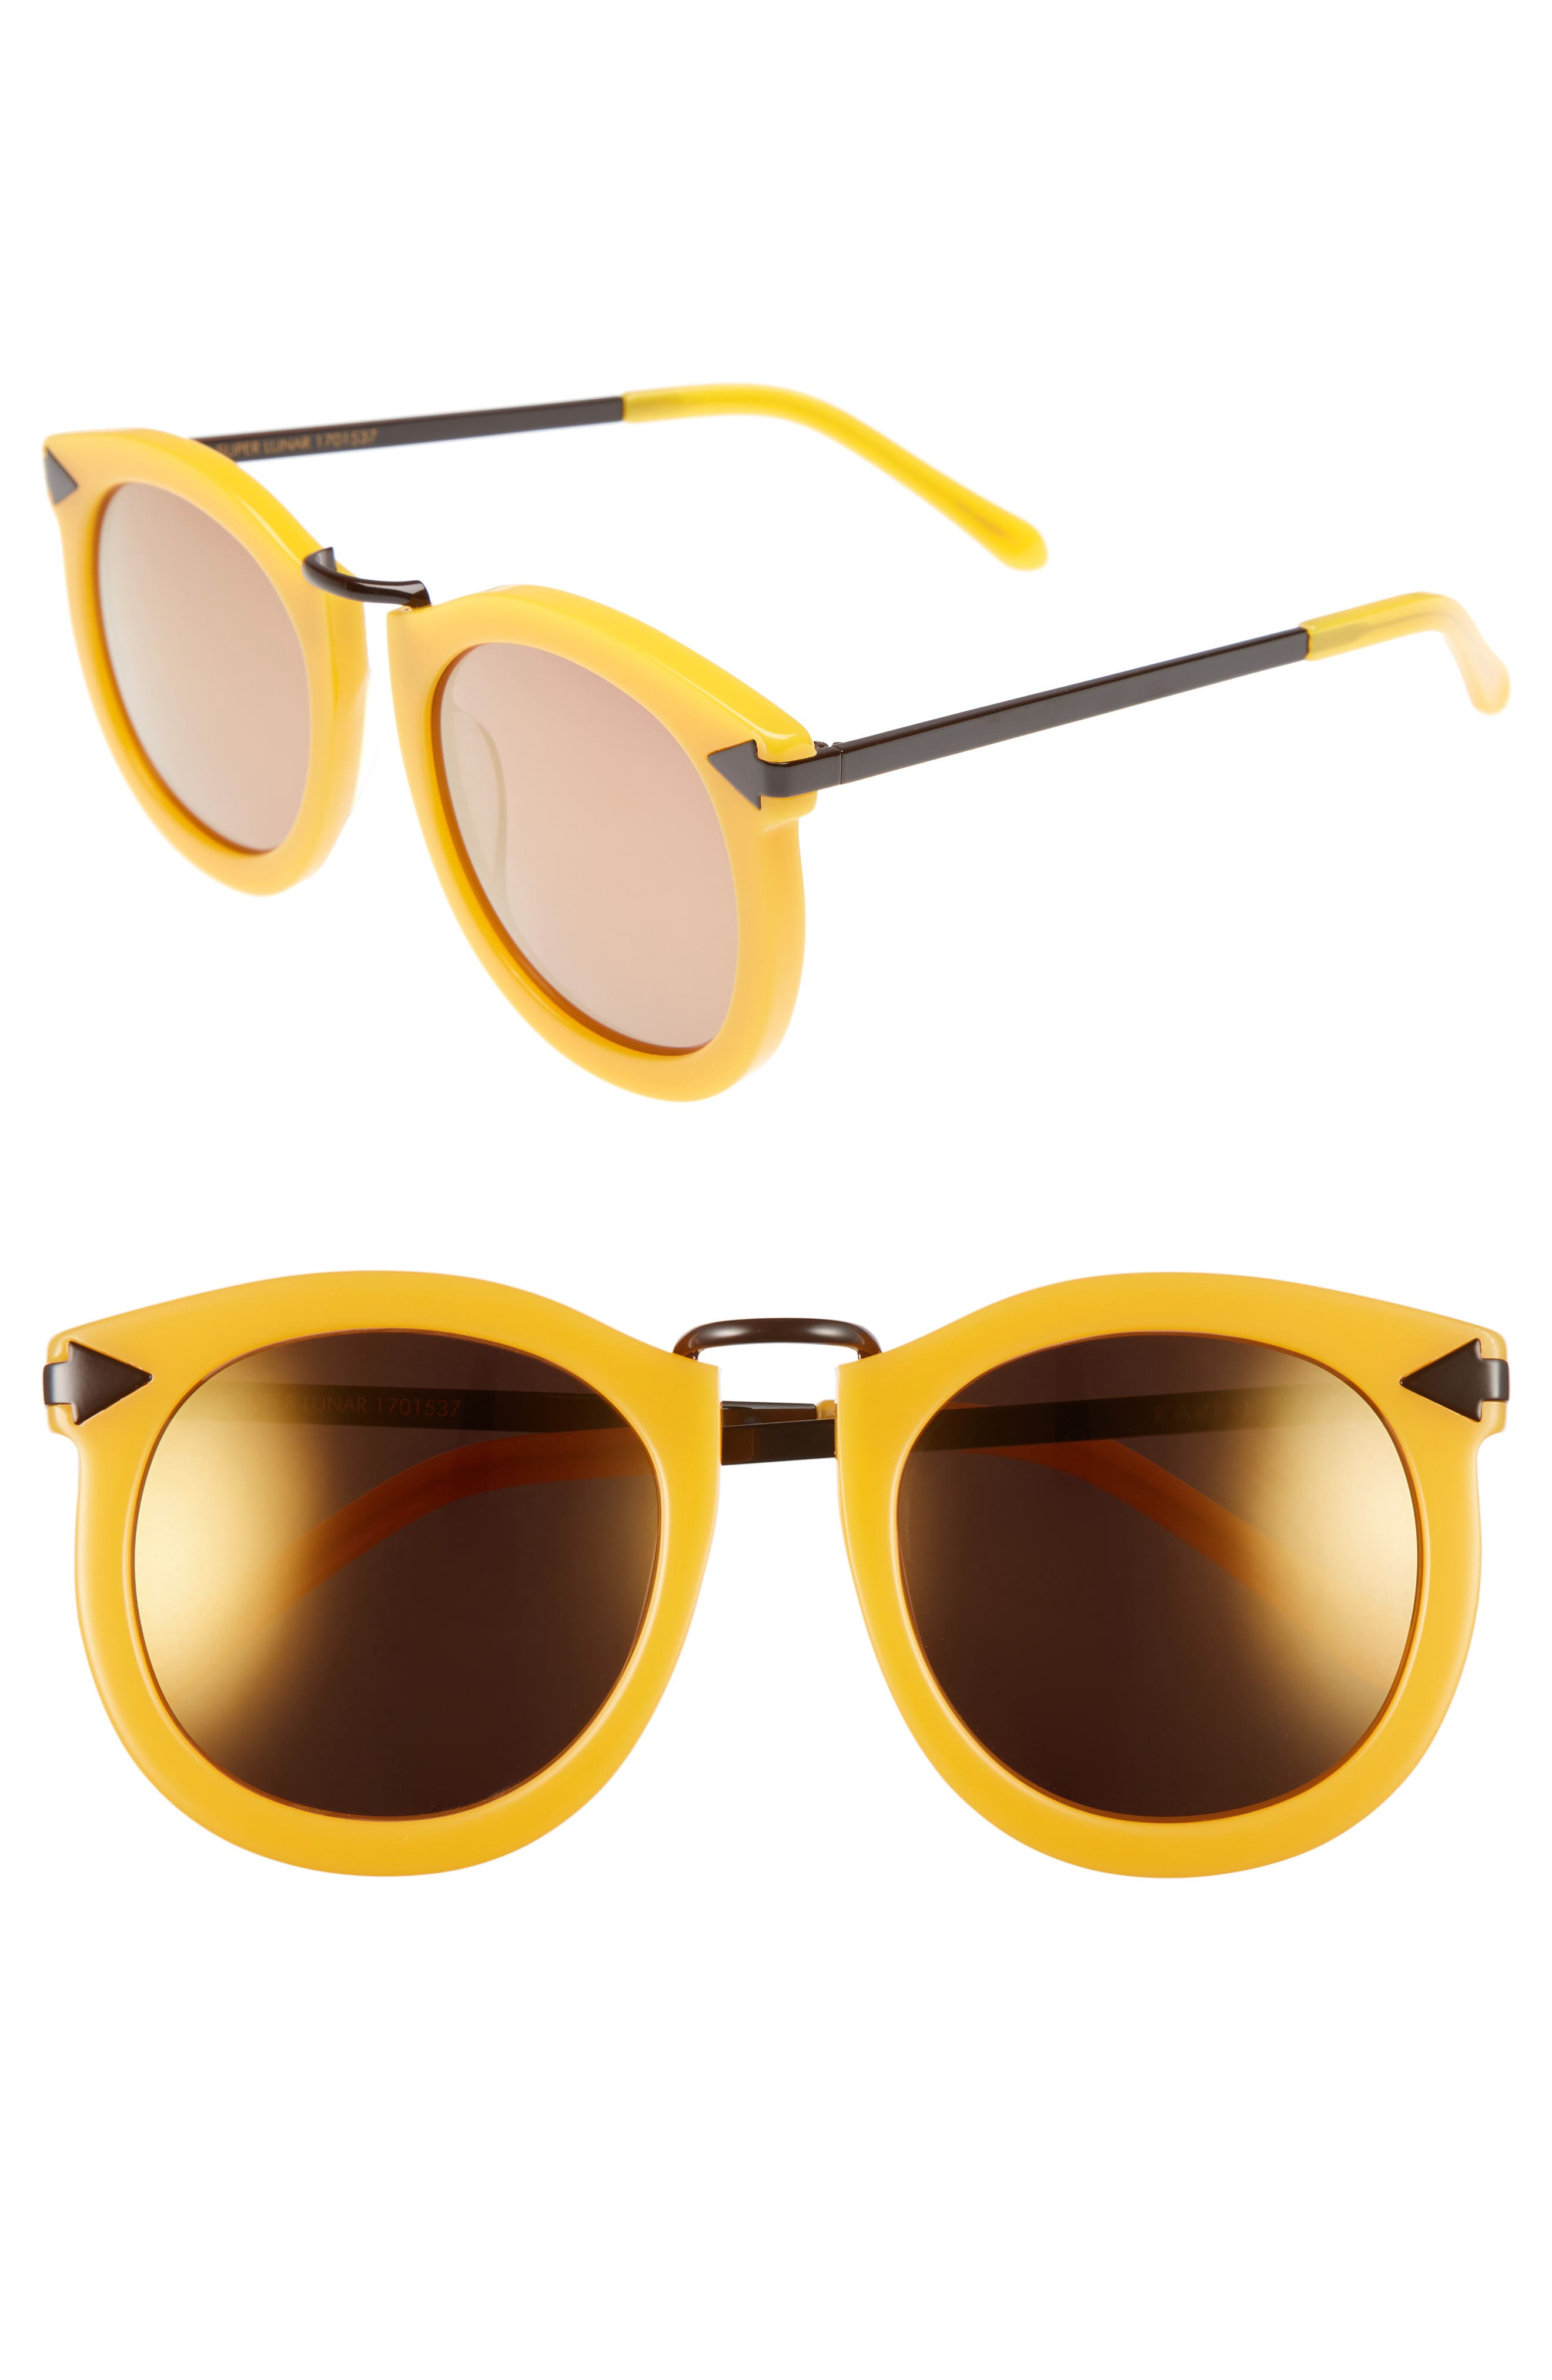 KAREN WALKER Super Lunar - Arrowed by Karen 52mm Sunglasses